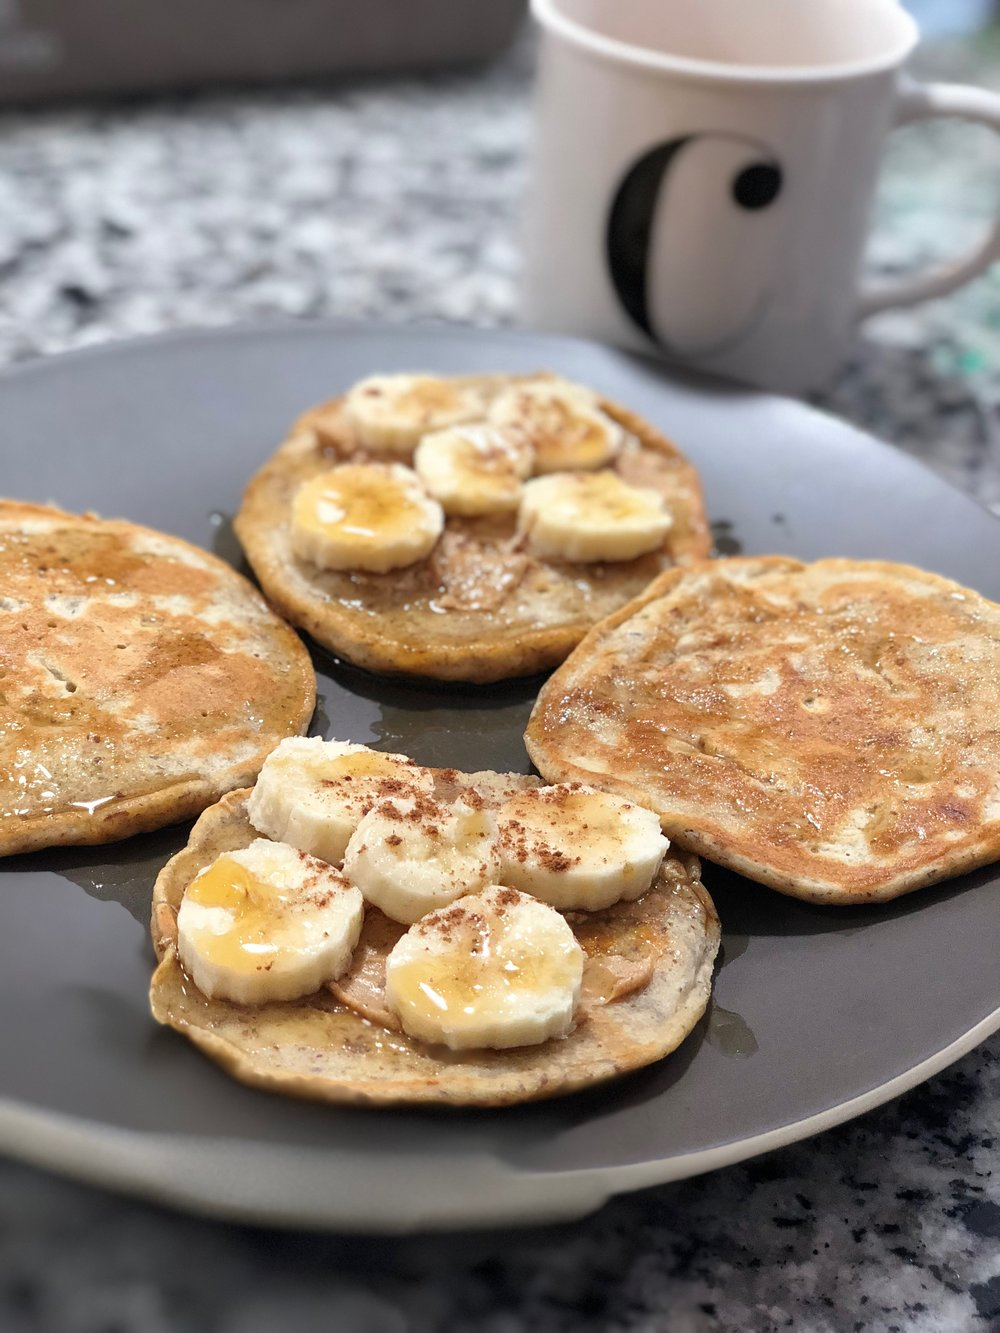 Our favorite breakfast to make at home.